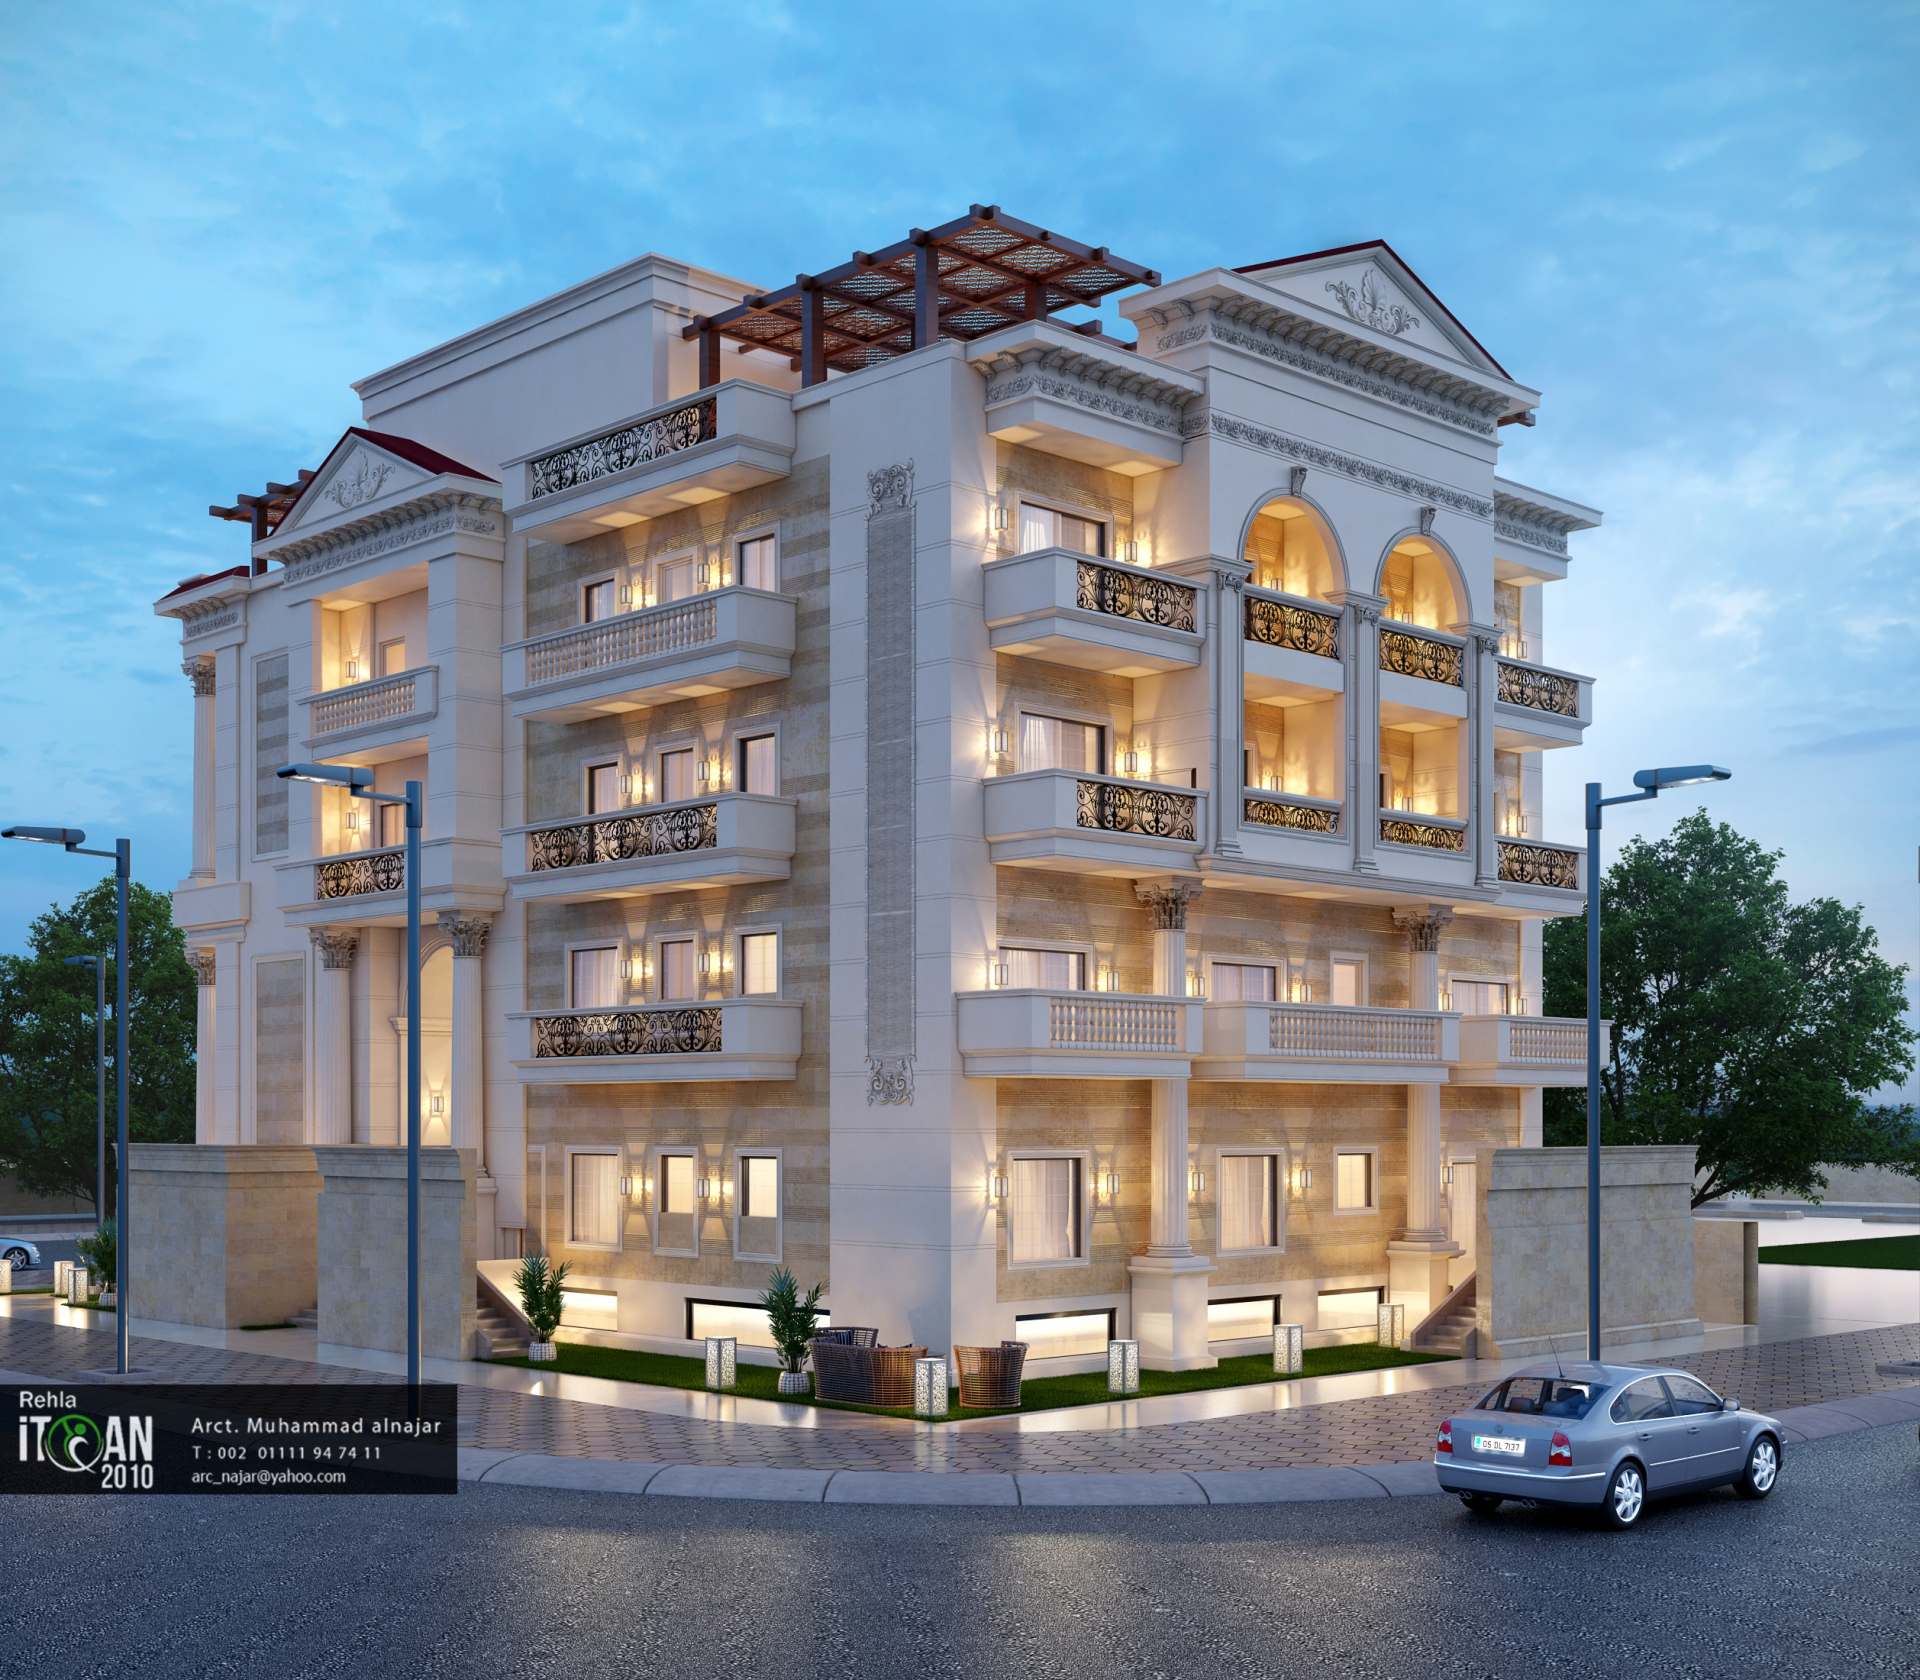 Classic residential building design itqan 2010 for Residential building designer